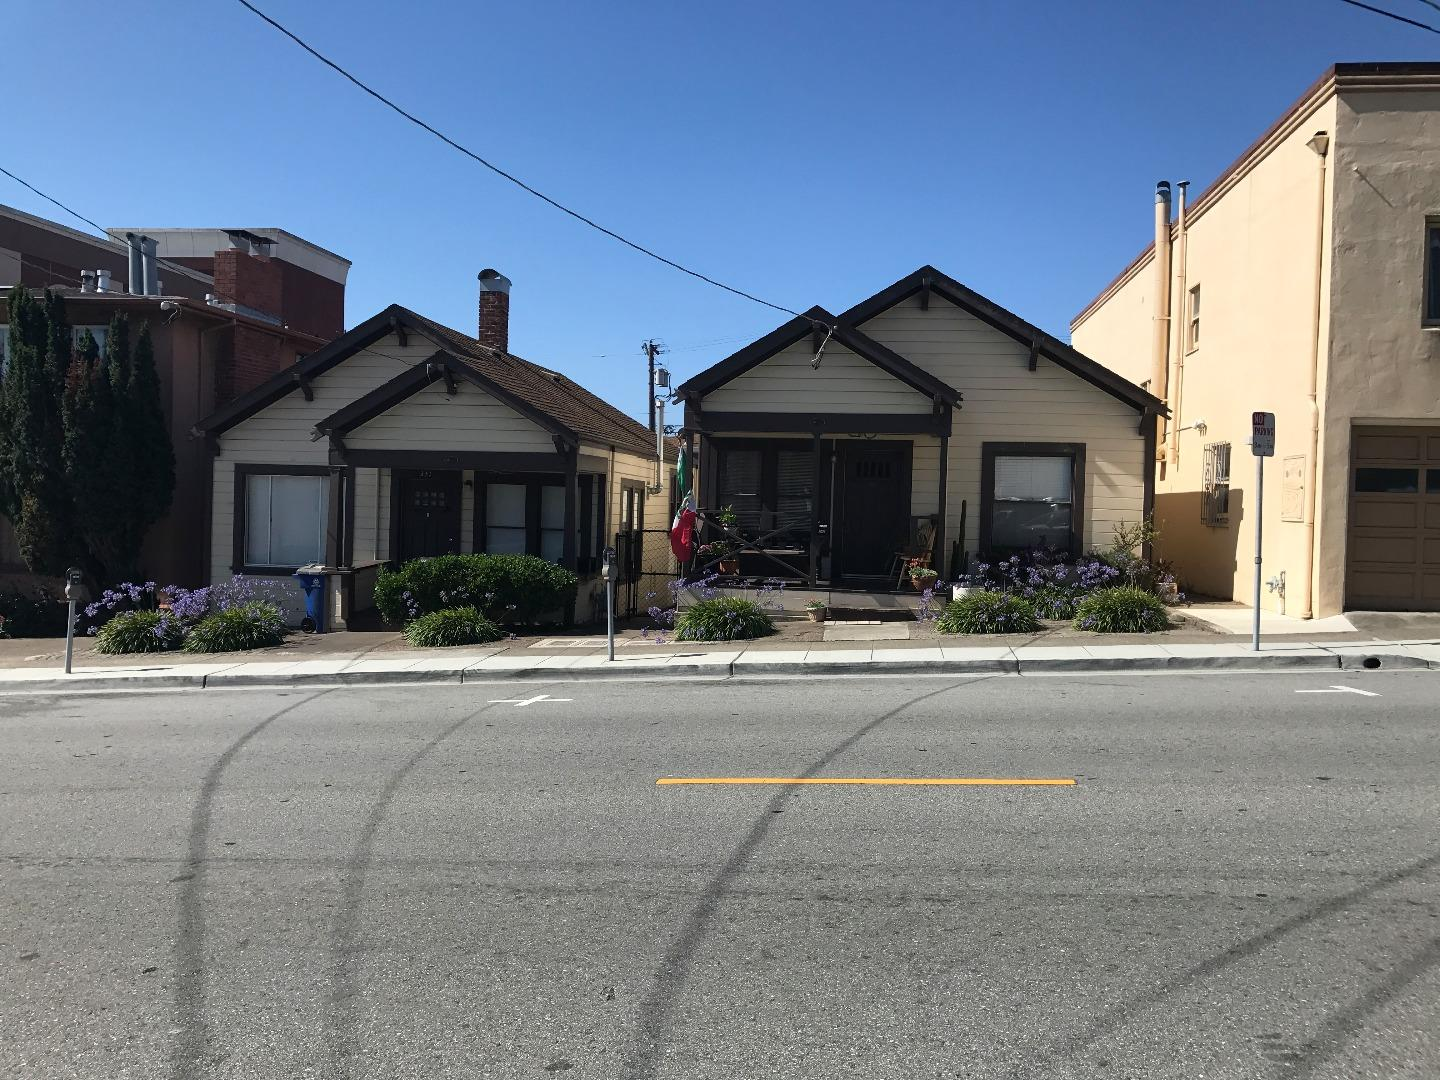 Casa Multifamiliar por un Venta en 343 4th Lane 343 4th Lane South San Francisco, California 94080 Estados Unidos